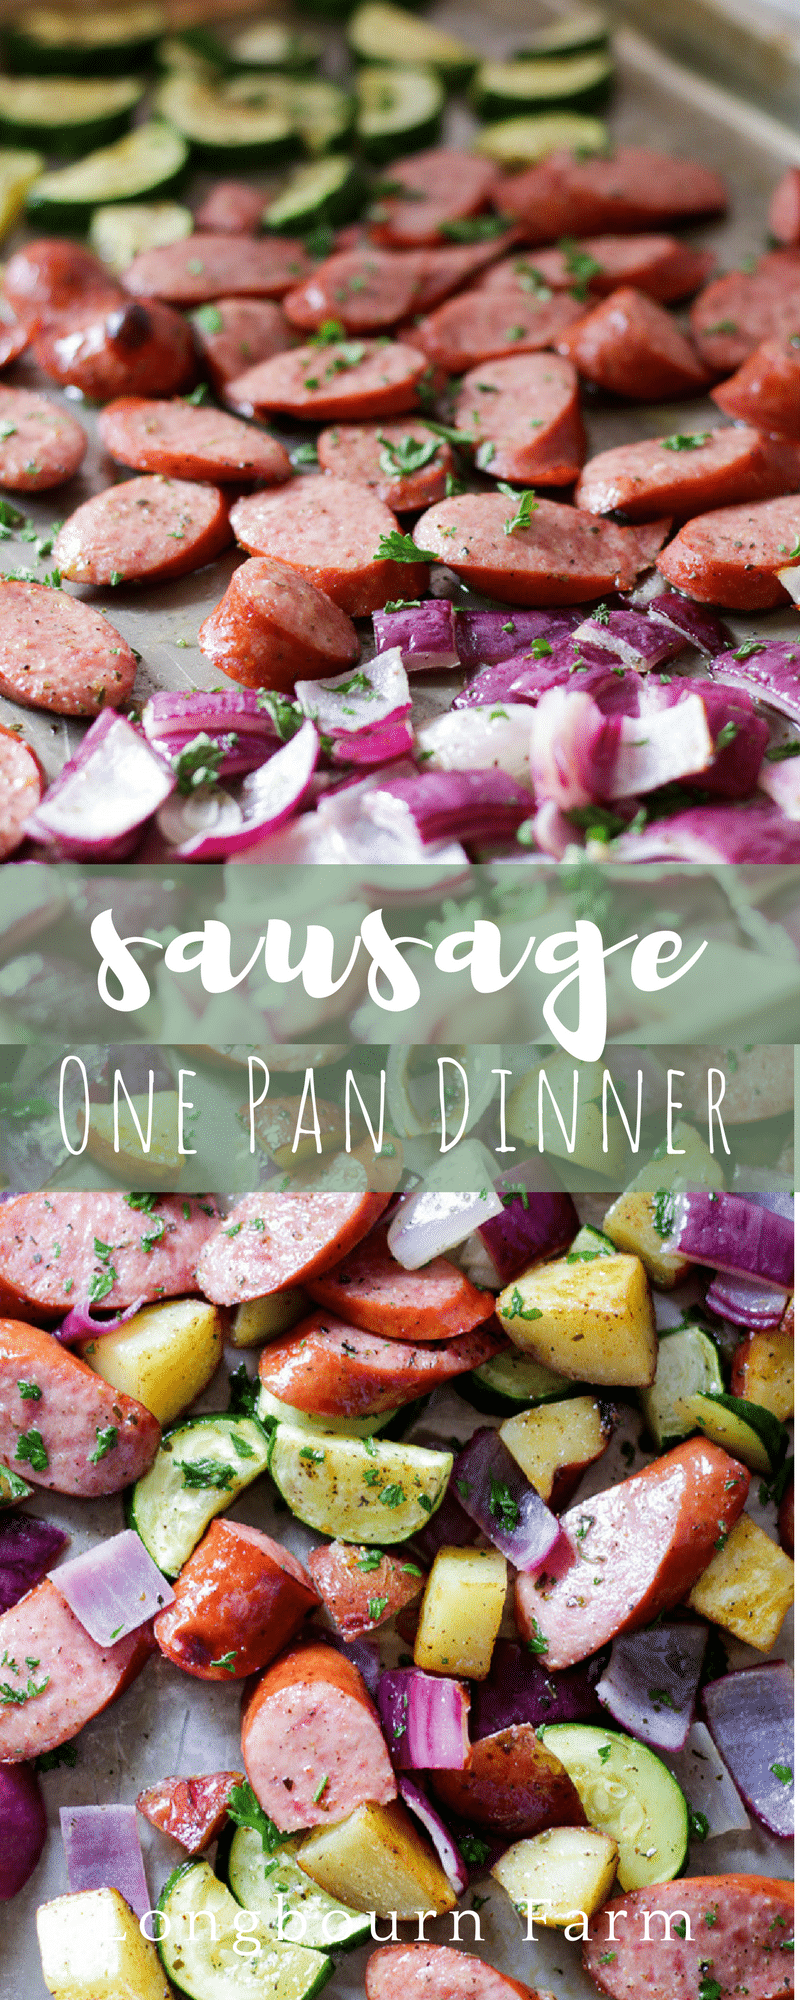 This Sausage Sheet Pan Dinner is packed with flavor, easy to put together, and fast. Perfect family-friendly meal for a busy day.